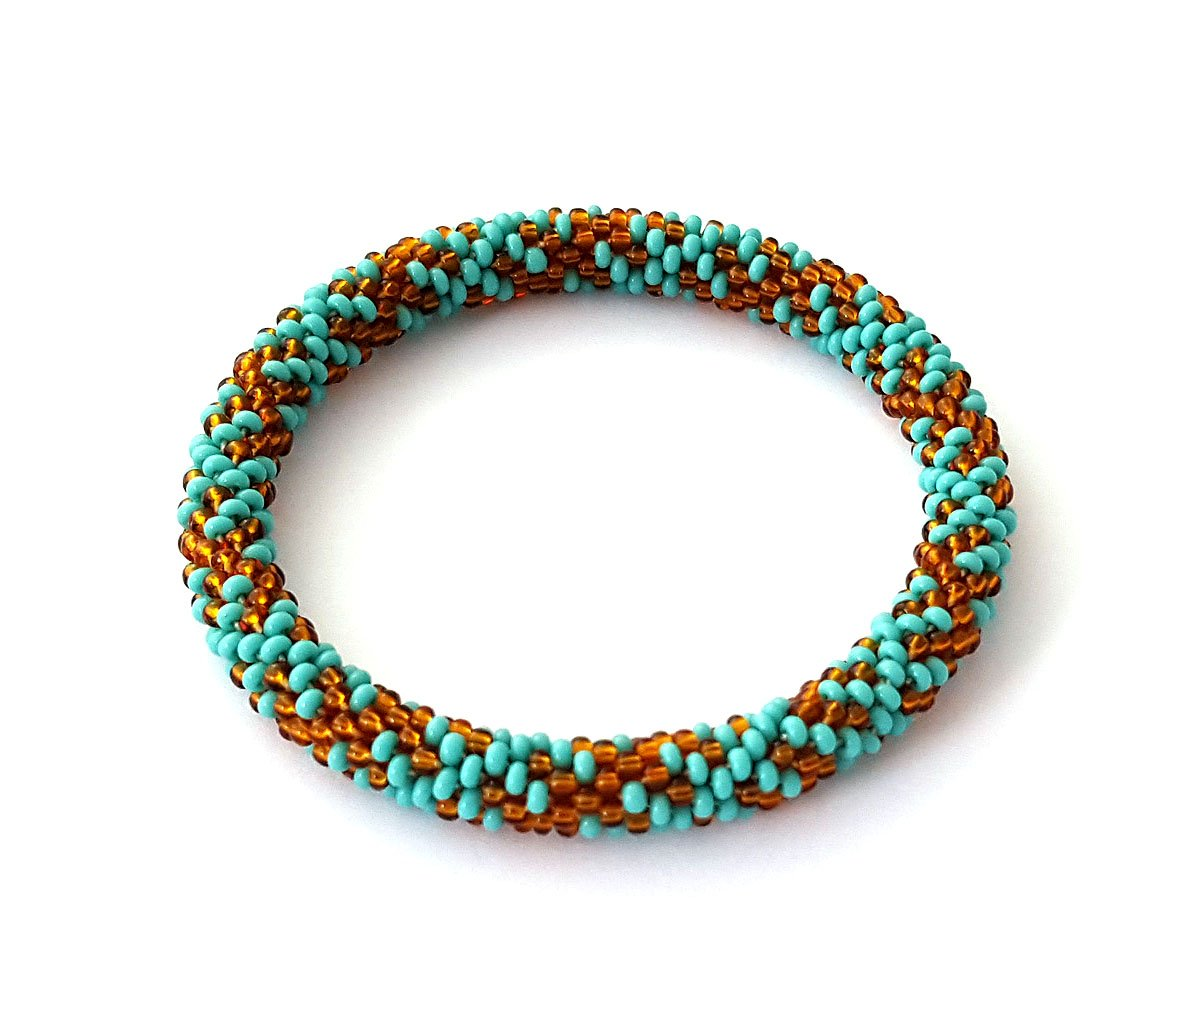 Brown Turquoise Roll On Bracelet Nepal Native Bangle Beaded Wristband